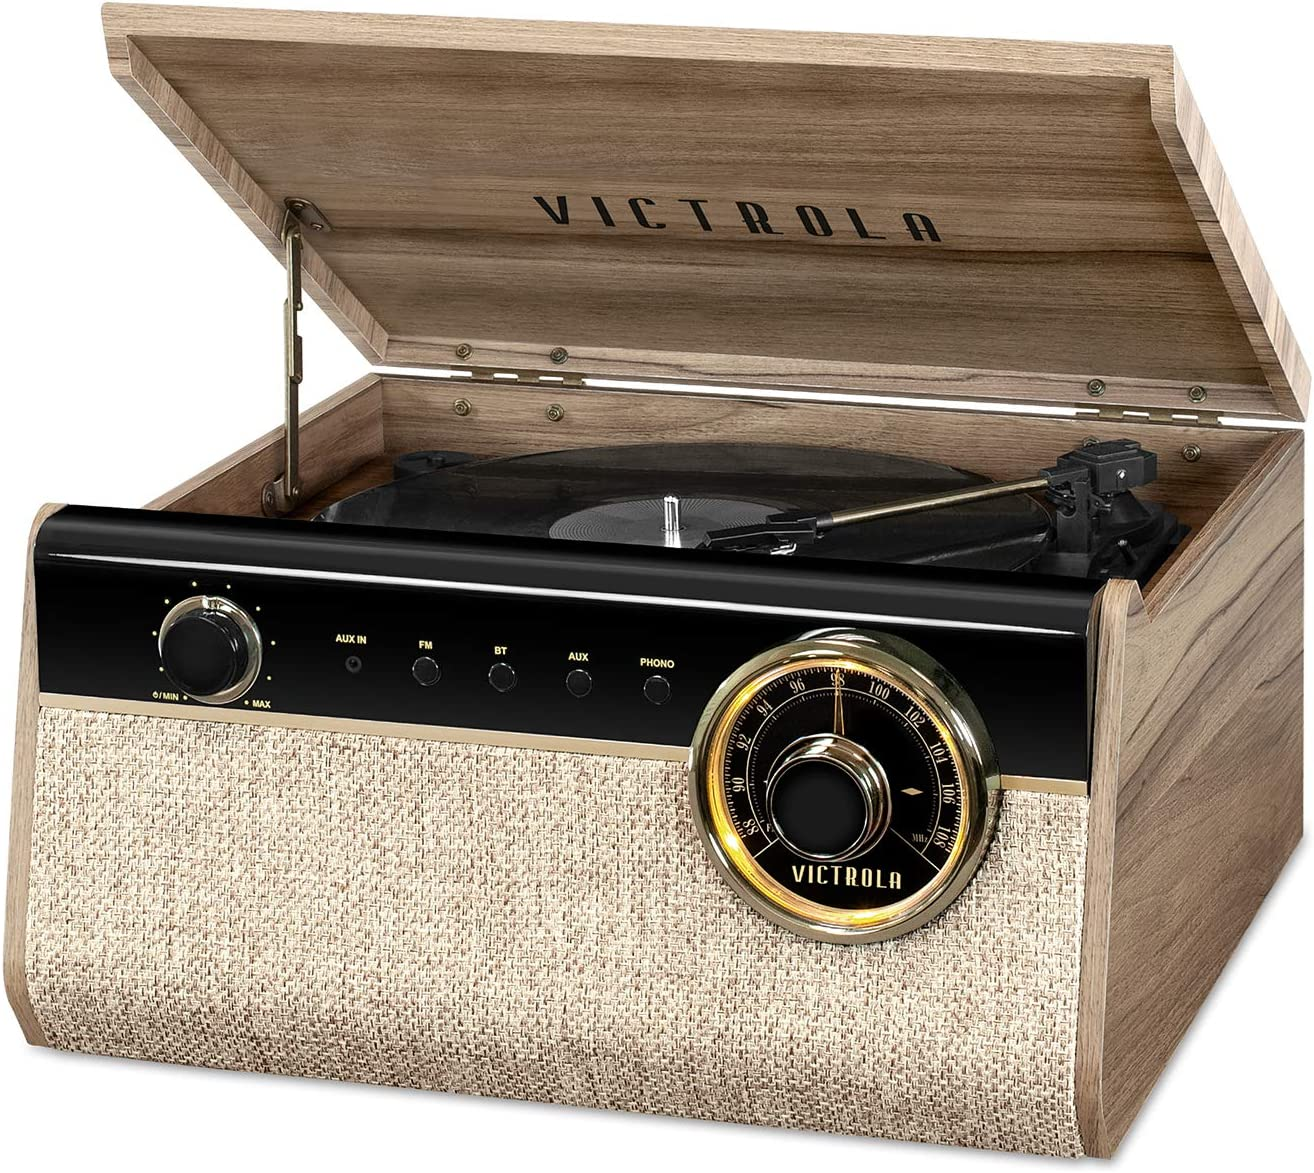 Victrola 4-in-1 Austin Bluetooth Record Player with 3-Speed Turntable and FM Radio, Farmhouse Walnut